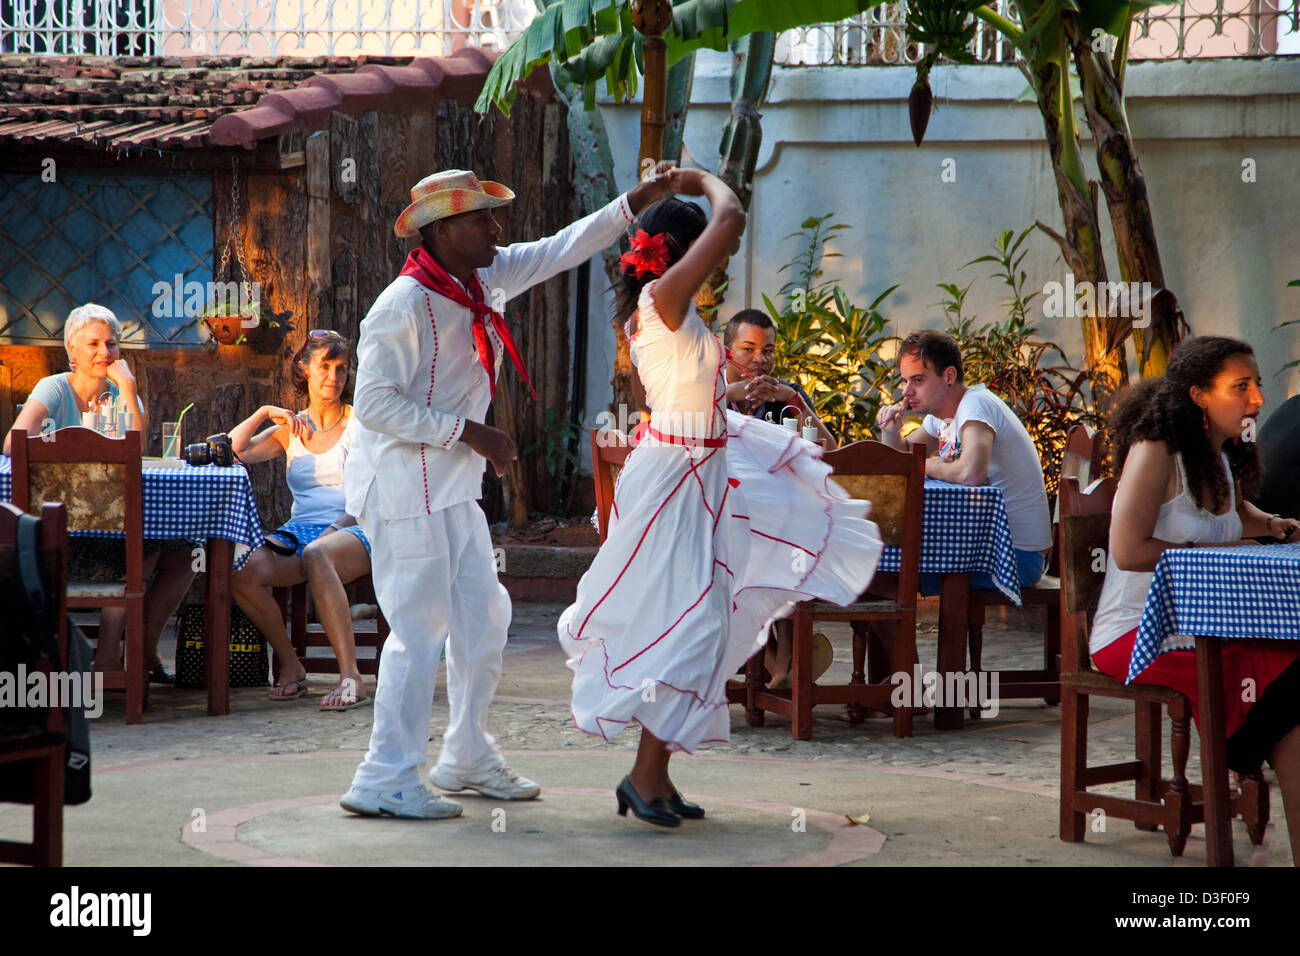 Cuban couple dancing Spanish style for tourists in an open air bar in Trinidad, Cuba - Stock Image